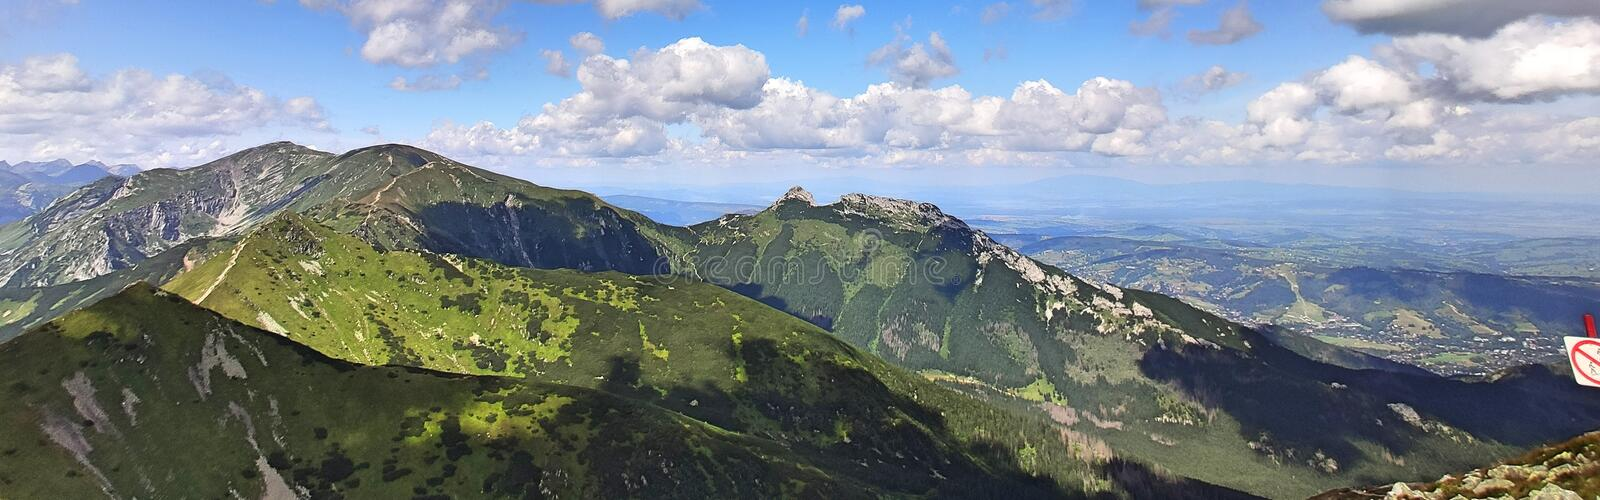 Tatra mountains. Panoramic View from the top of Kasprowy Wierch mount. Tatry, Poland stock image